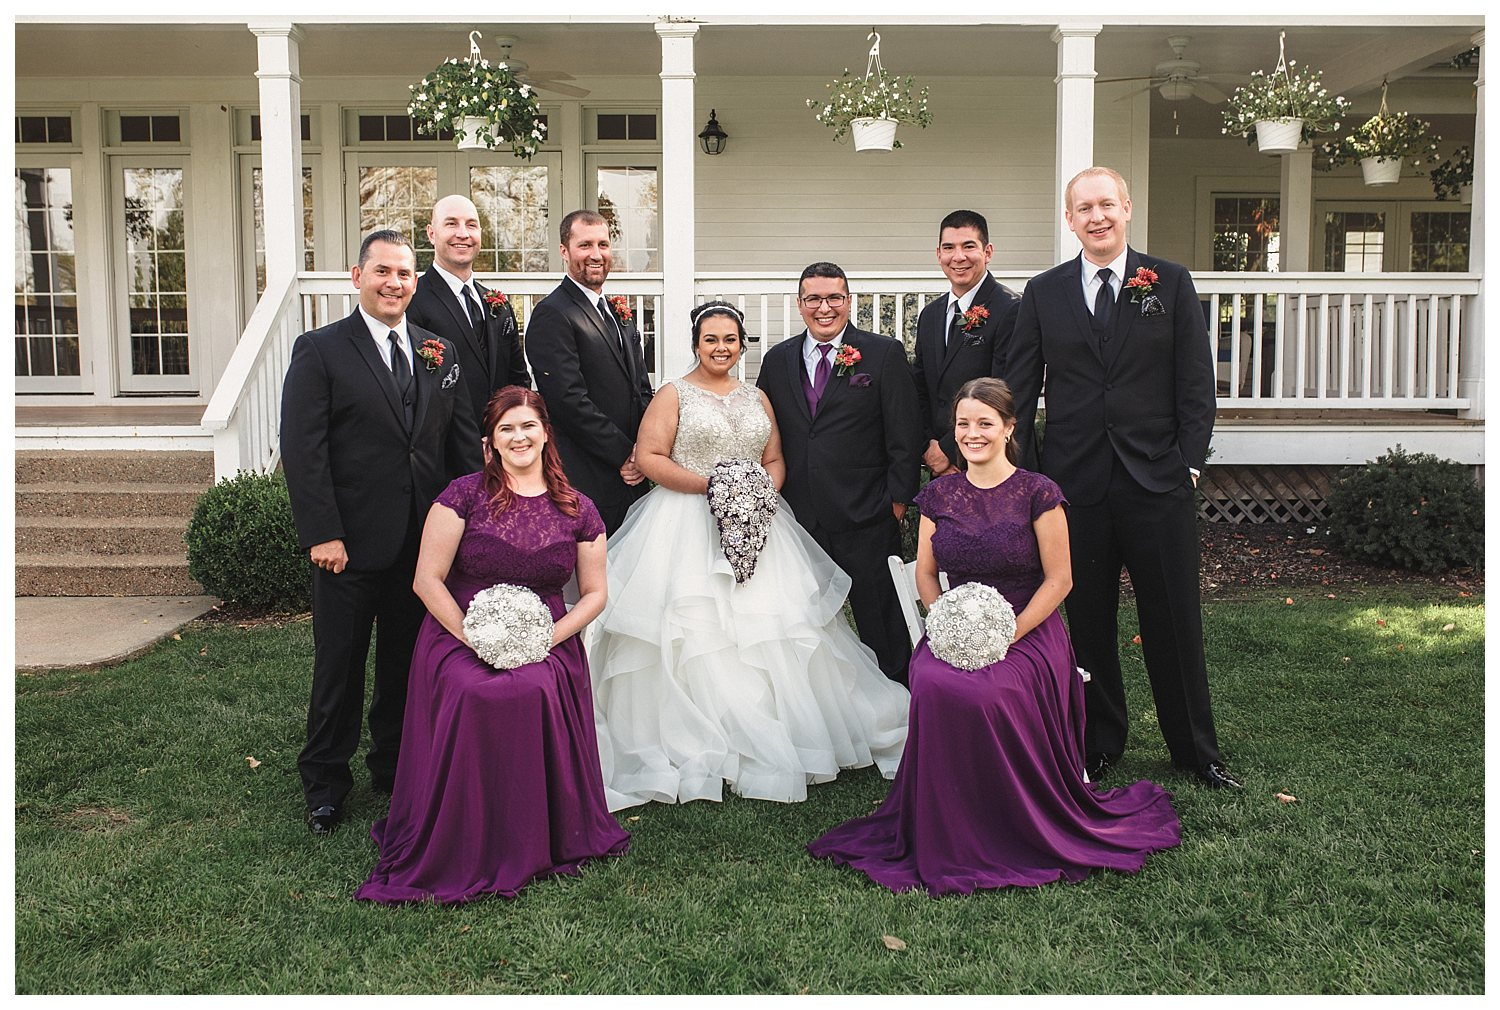 Kelsey_Diane_Photography_Hawthorne_House_Parkville_Kansas_City_Wedding_Veronica_Pat_0020.jpg